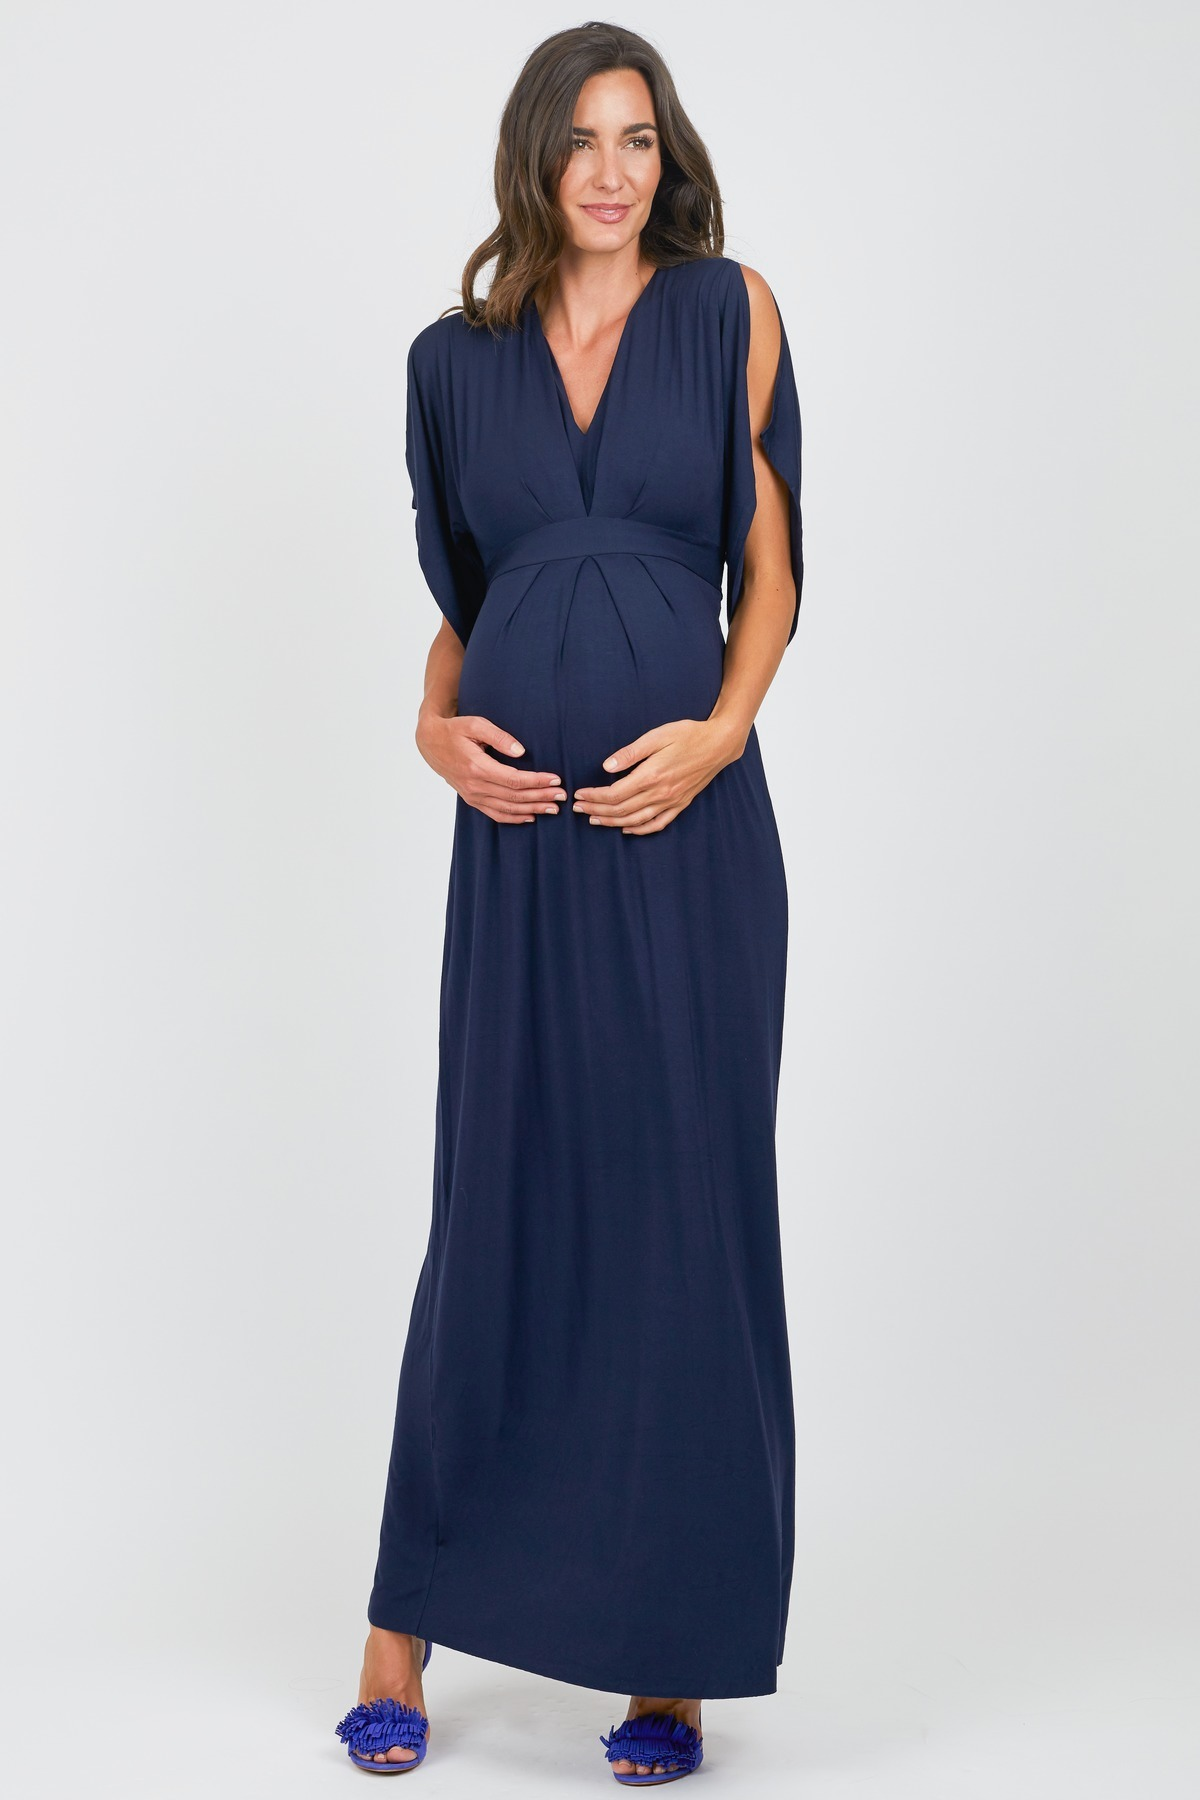 Split Sleeve Maxi Dress by Ingrid & Isabel - Rent Clothes with Le Tote